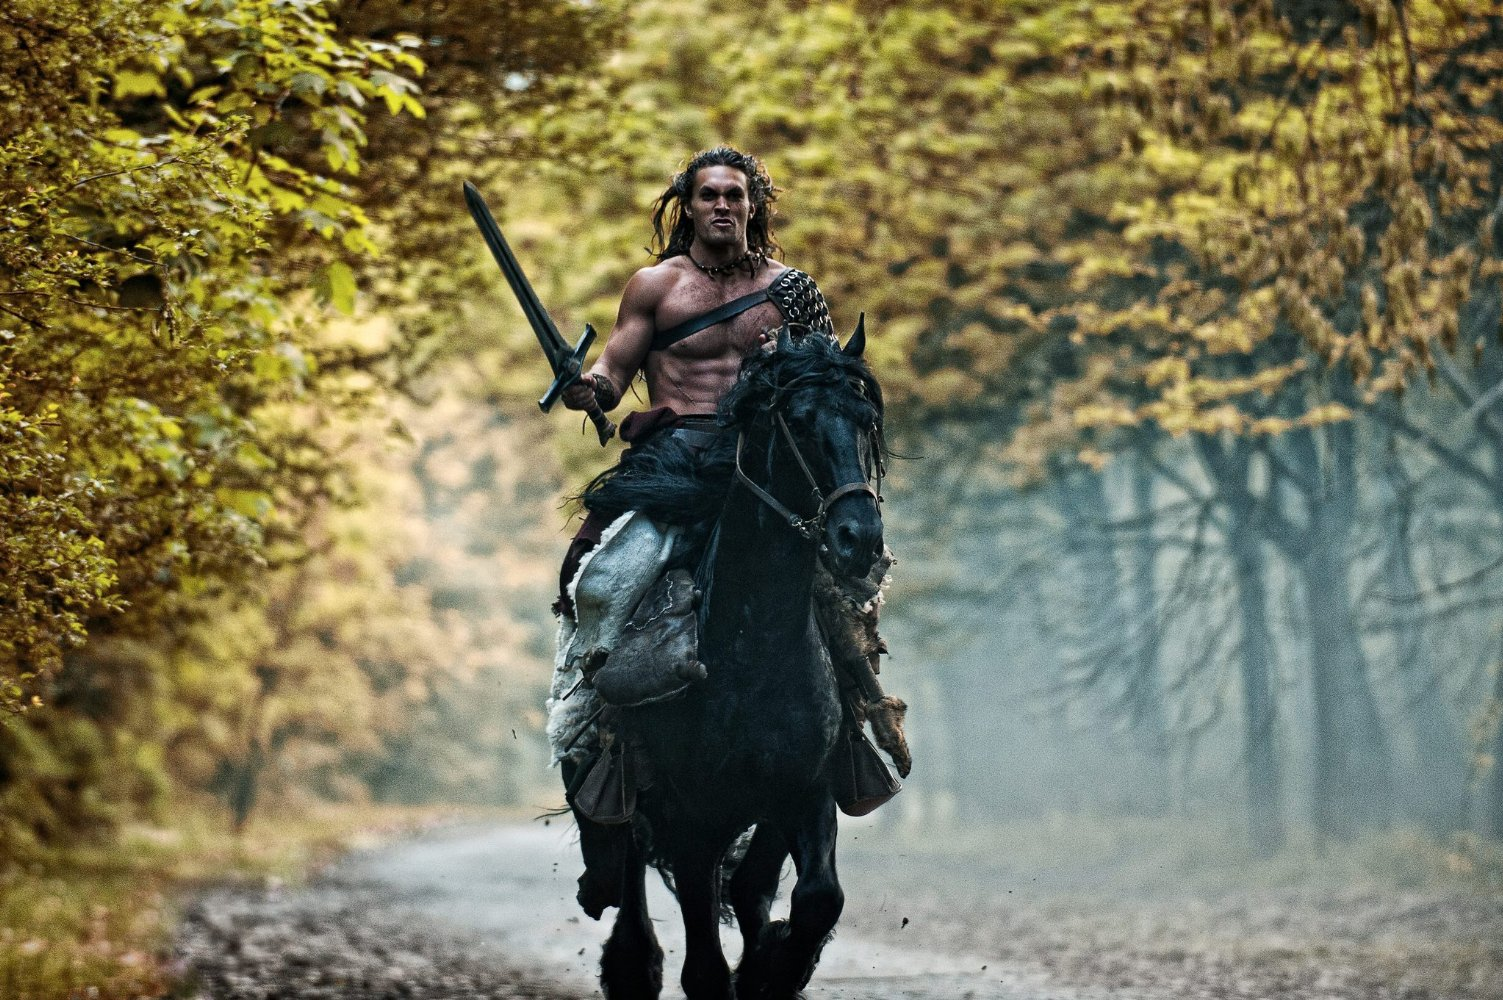 Jason Momoa Played Two Comic Book Characters | 8 Curious Facts About Jason Momoa | Brain Berries